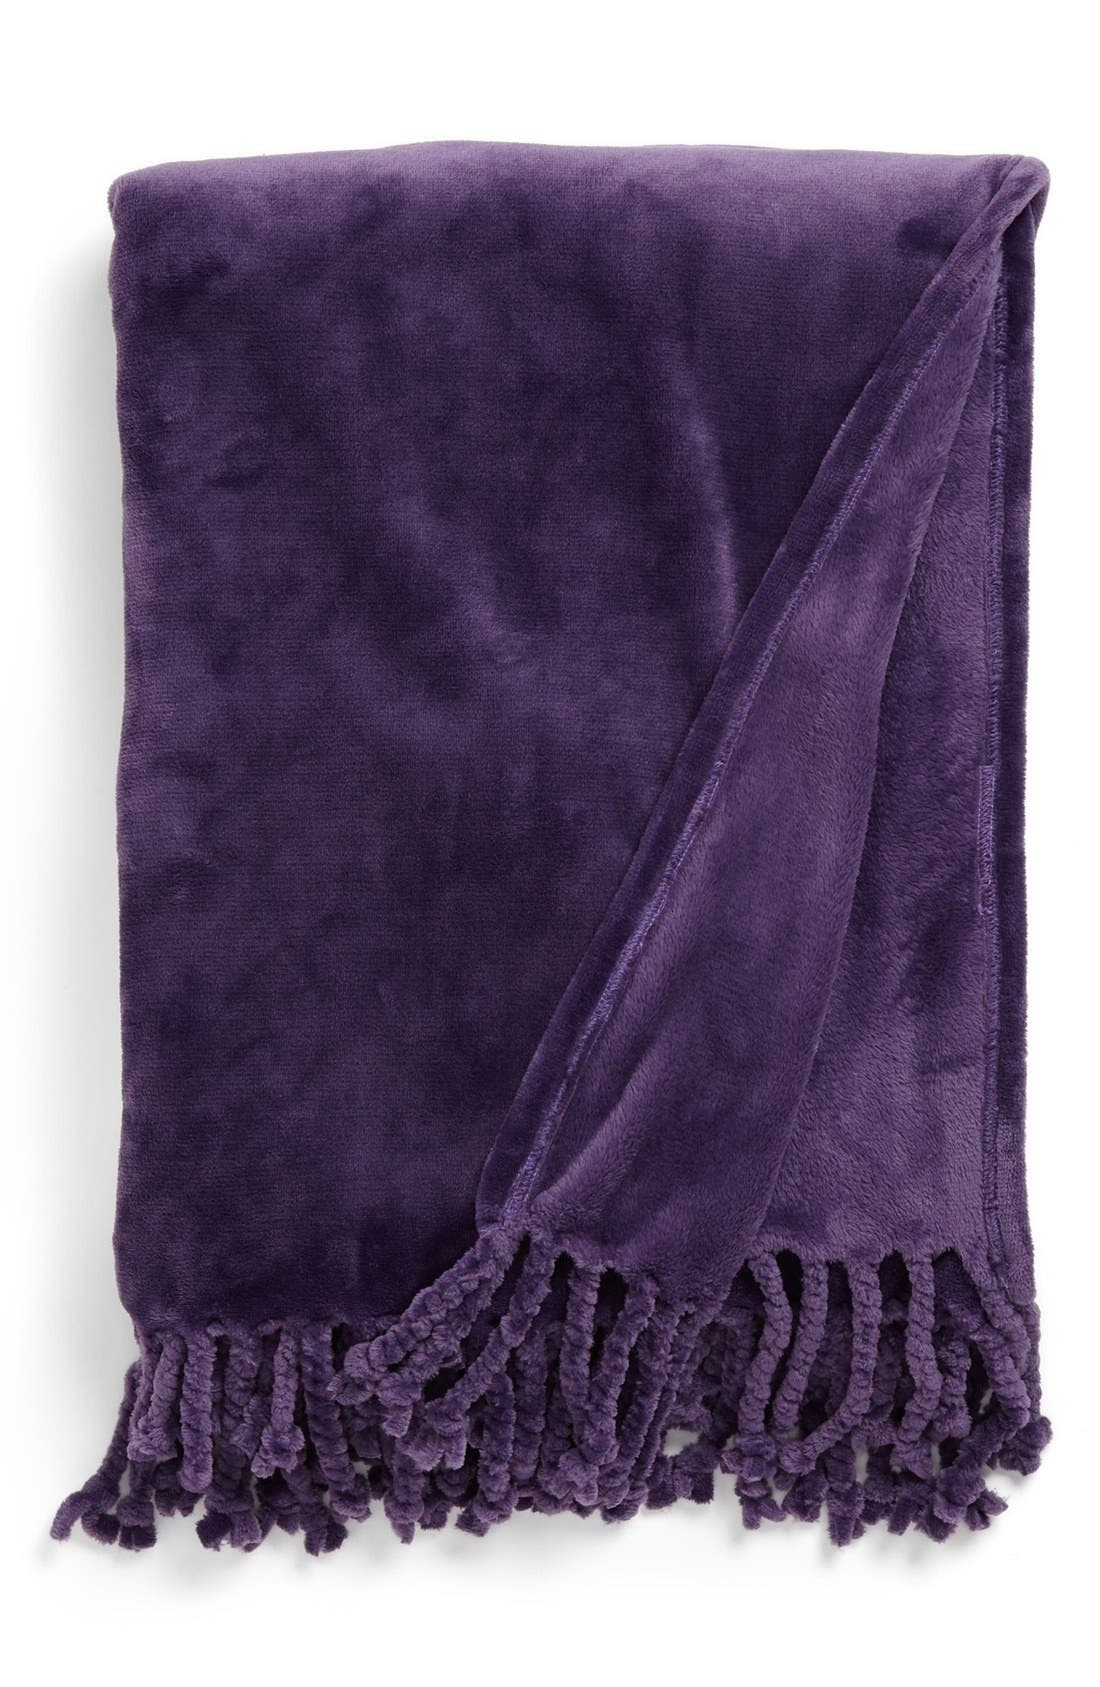 Kennebunk Bliss Plush Throw,                         Main,                         color, PURPLE KEEPSAKE